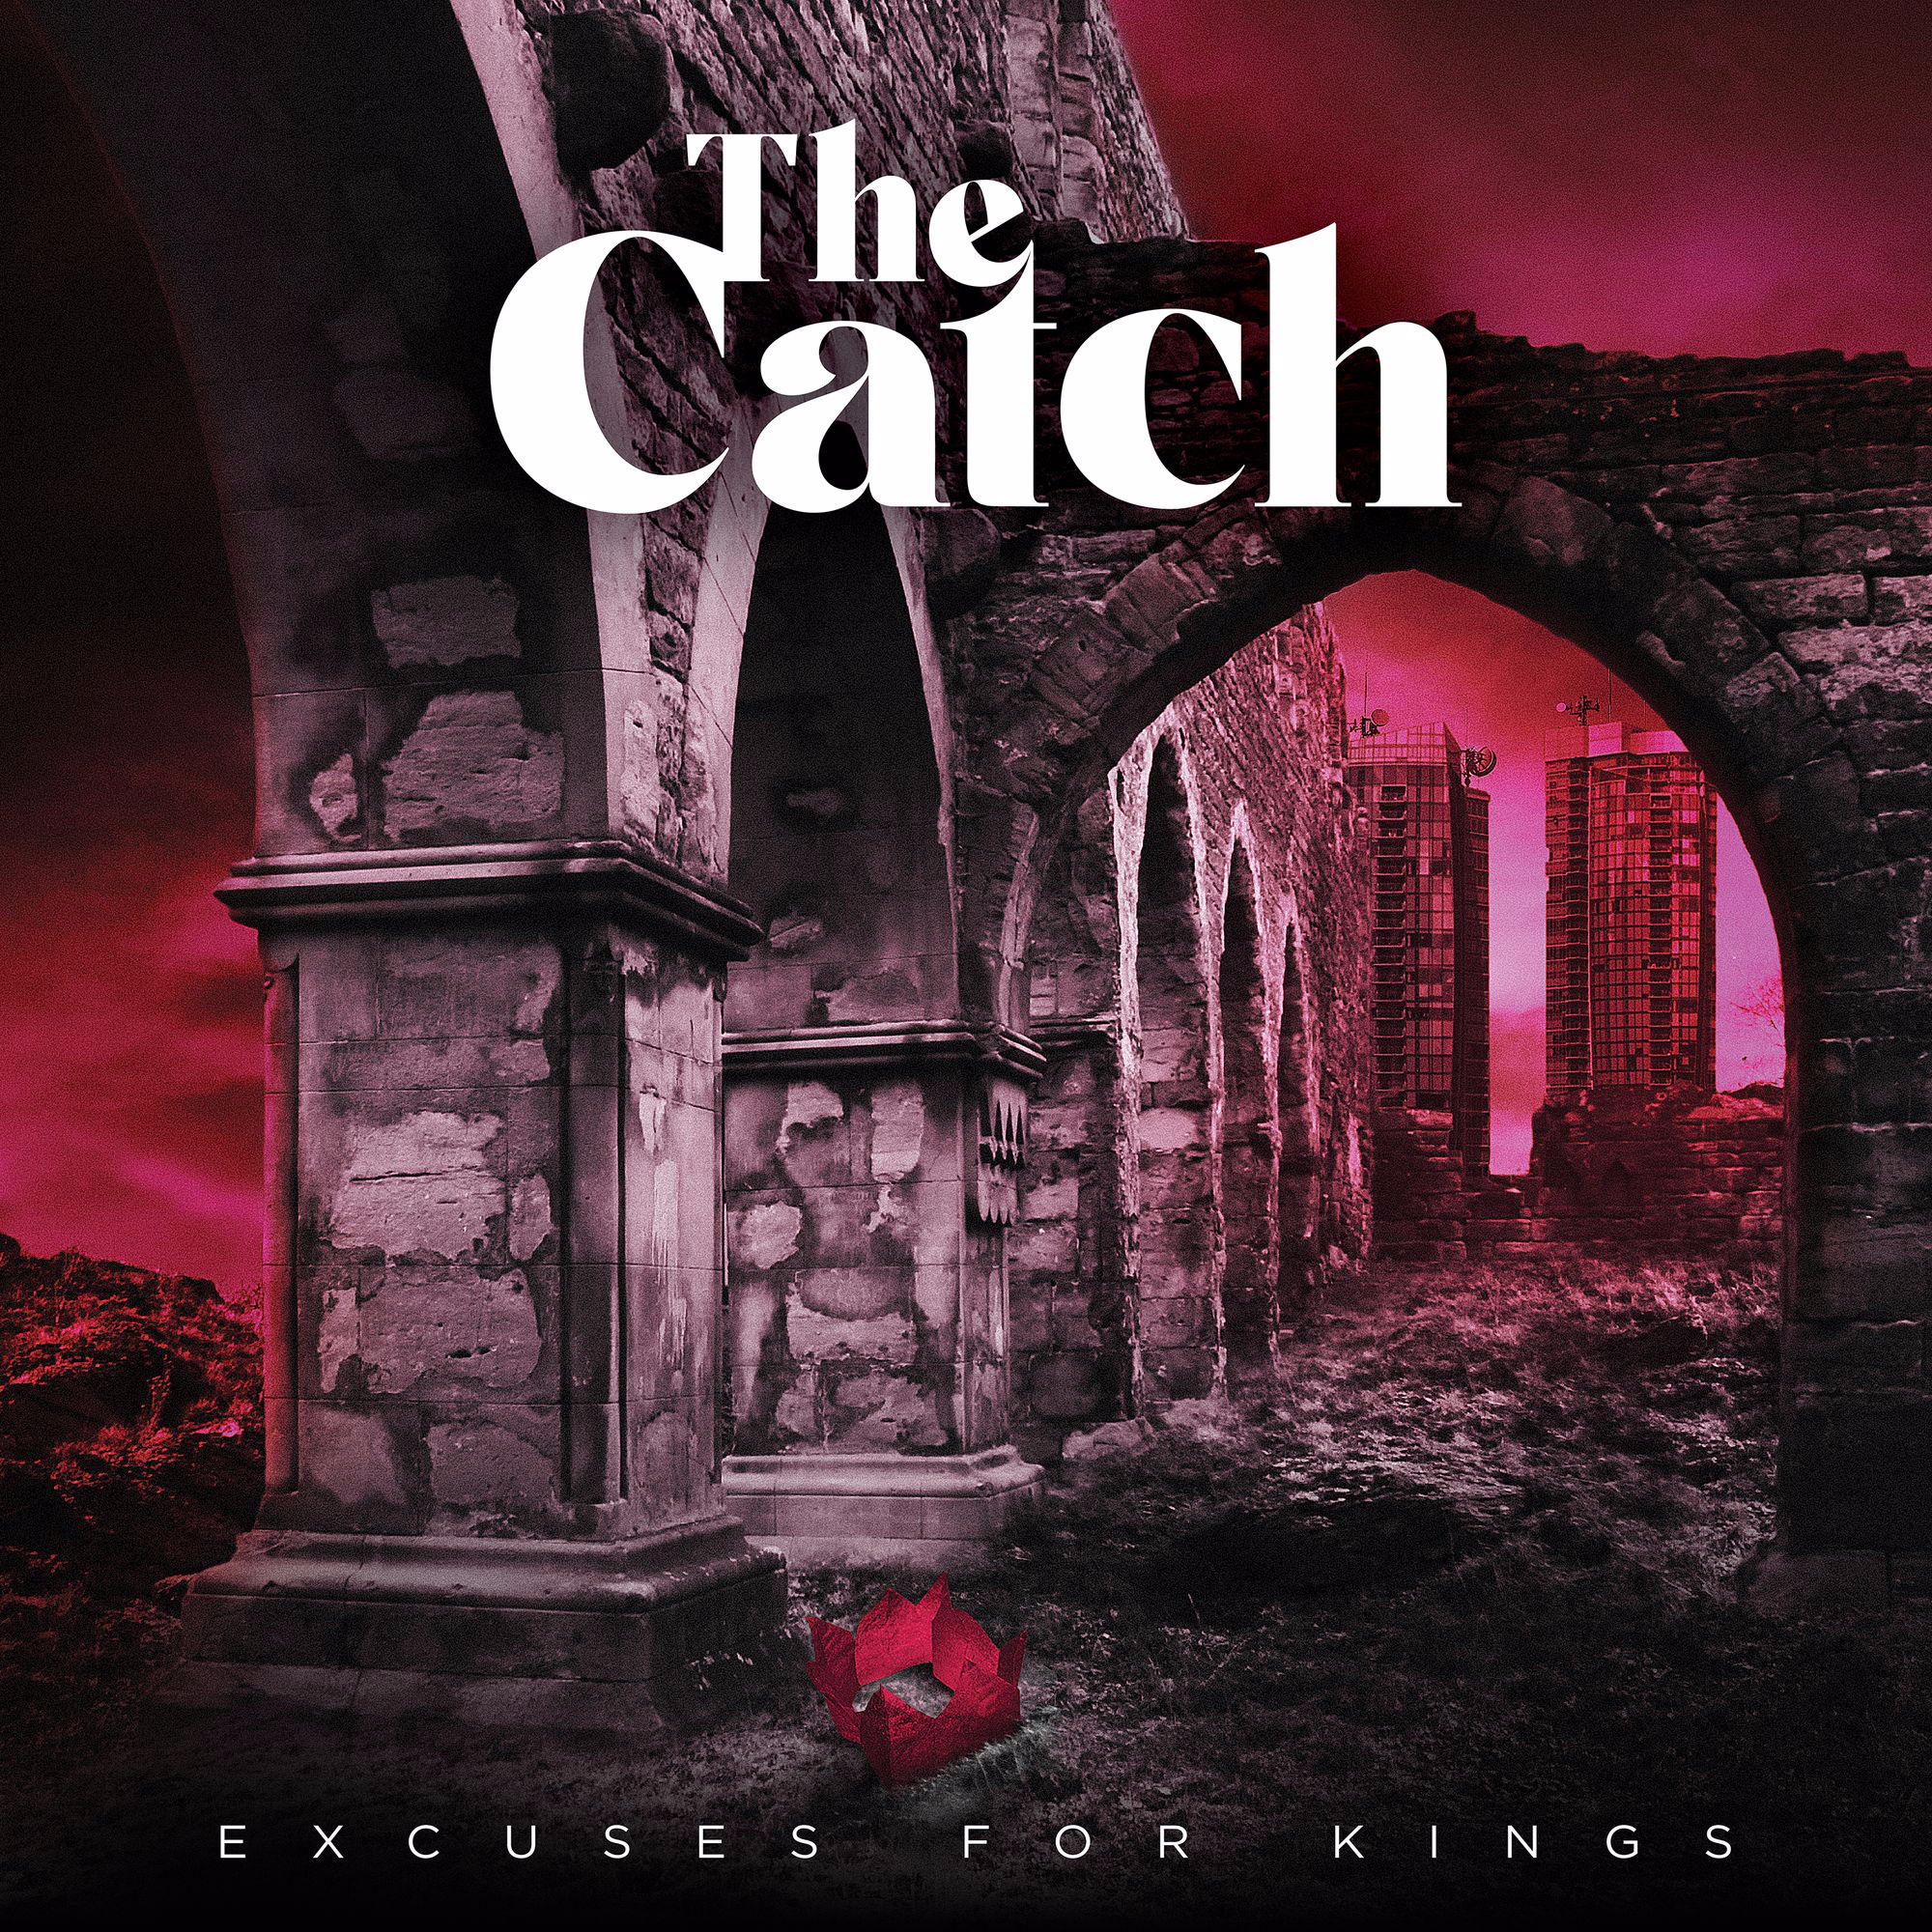 The Catch Excuses For Kings